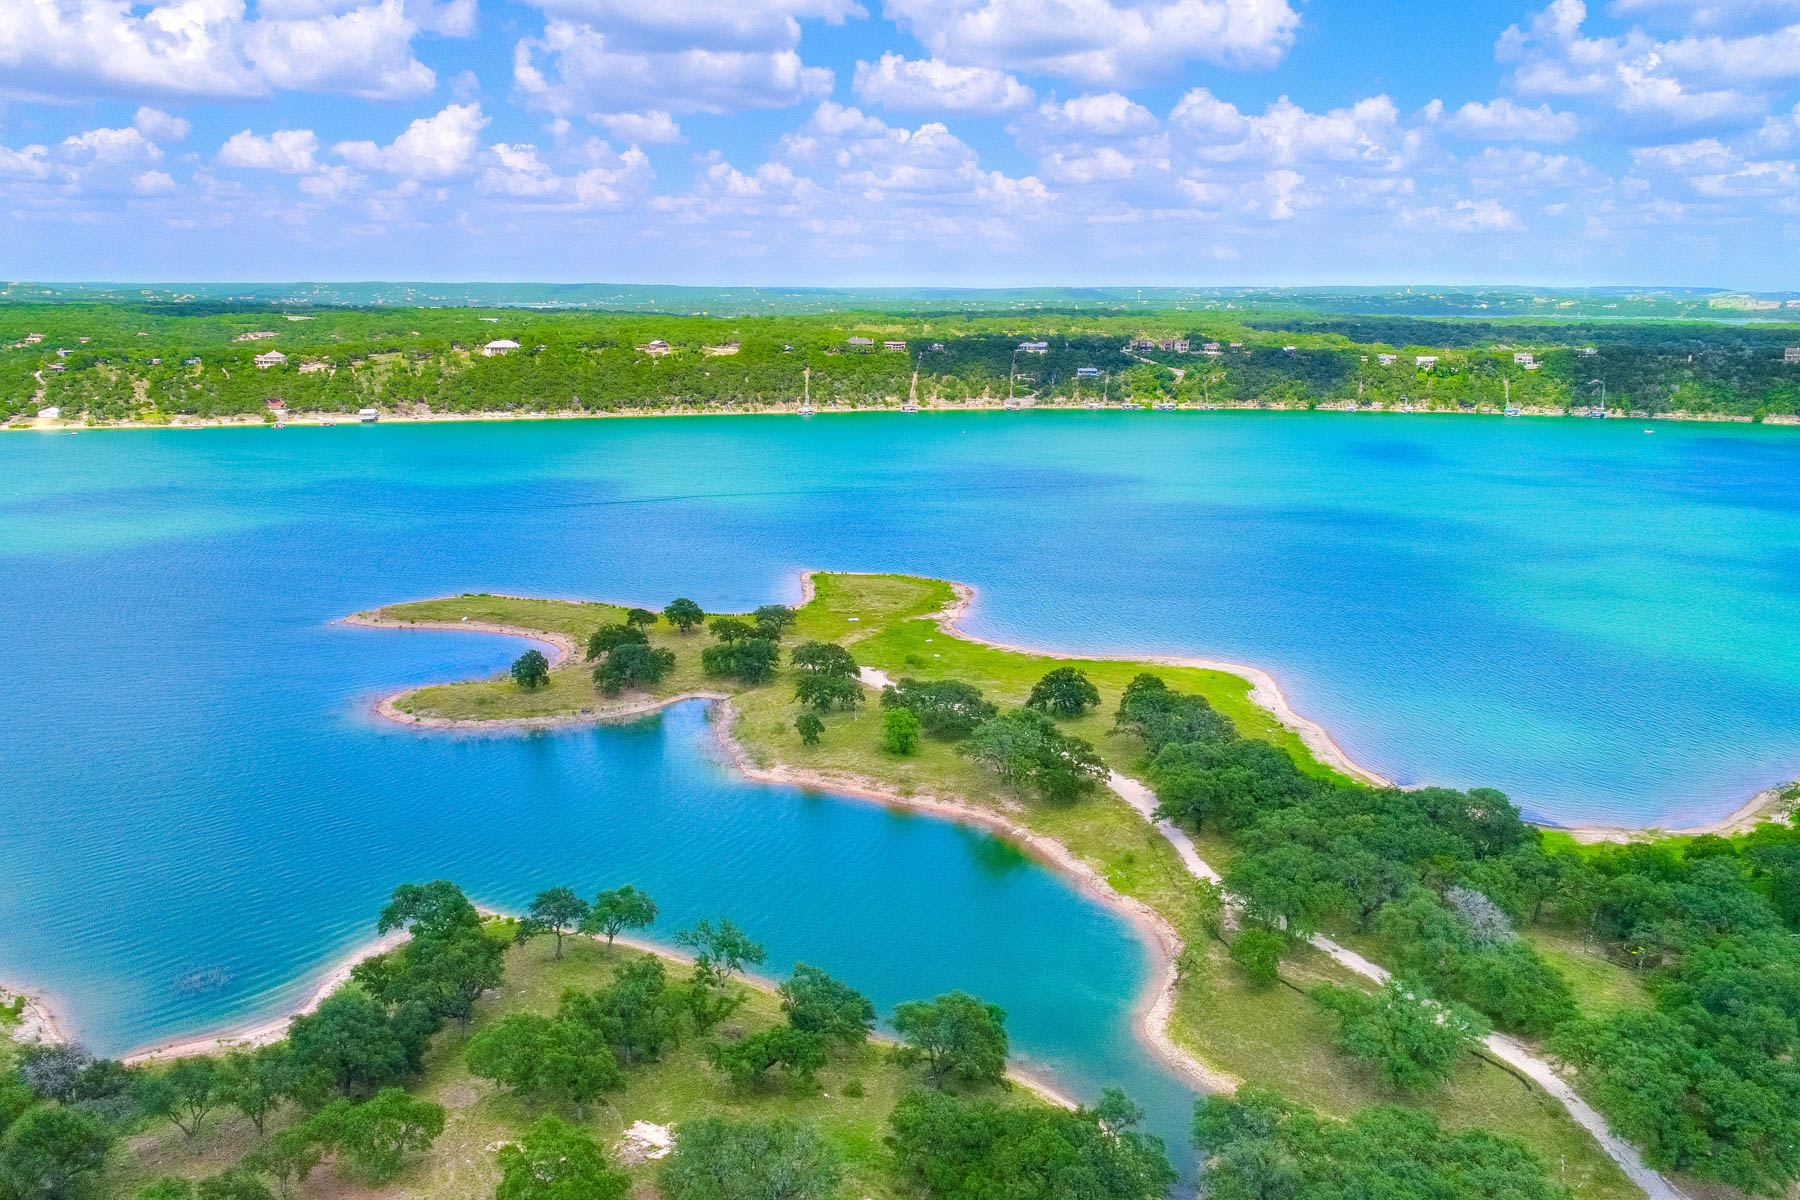 Land for Sale at The Reserve on Lake Travis: 18 Waterfront Acres 2200/08 Cypress Club Pointe, Spicewood, Texas, 78669 United States